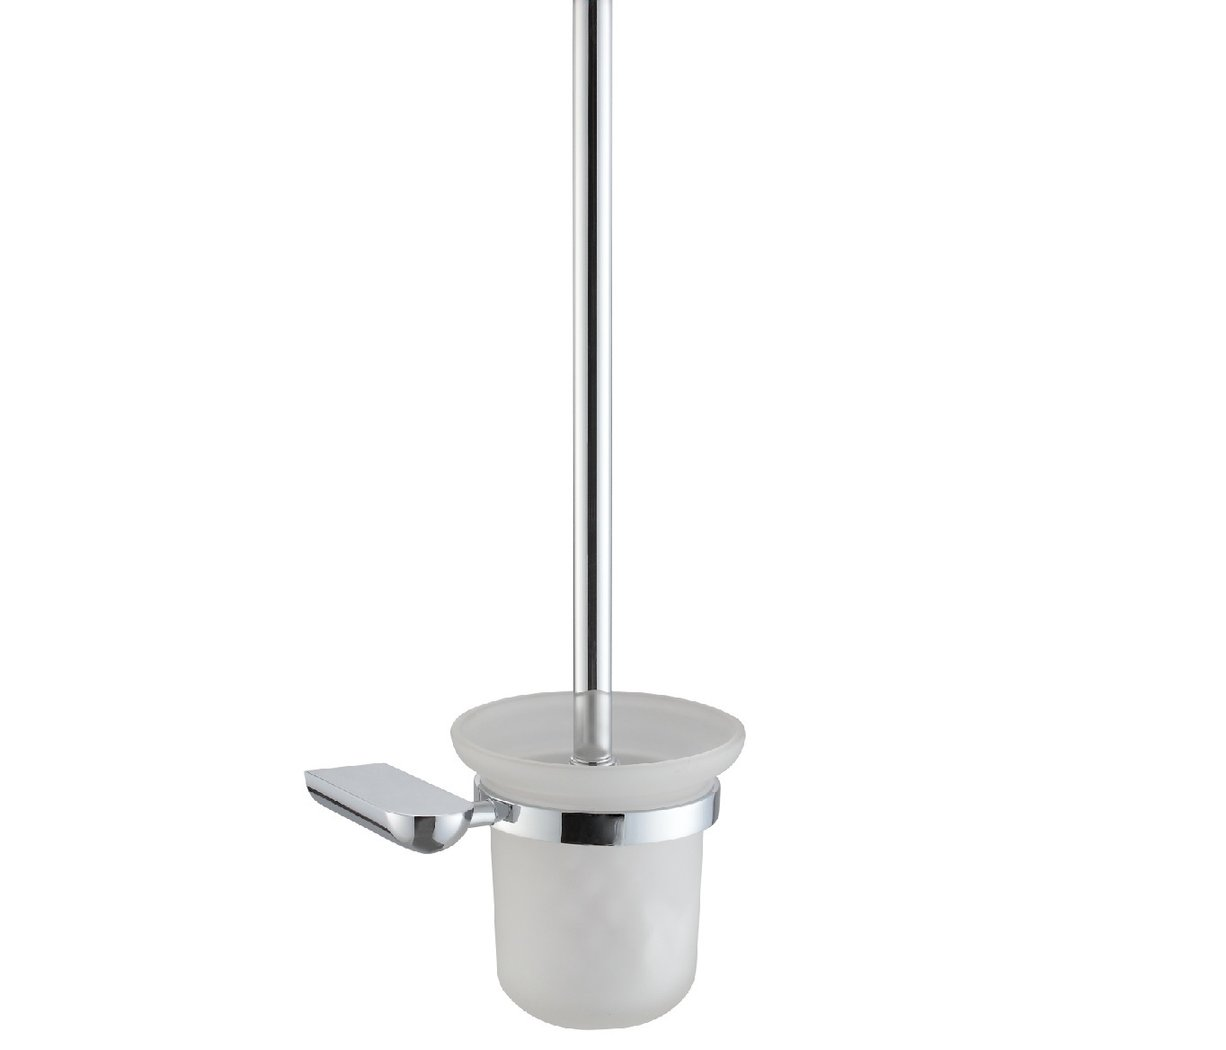 Just Taps Plus Vue Toilet Brush And Holder 87165